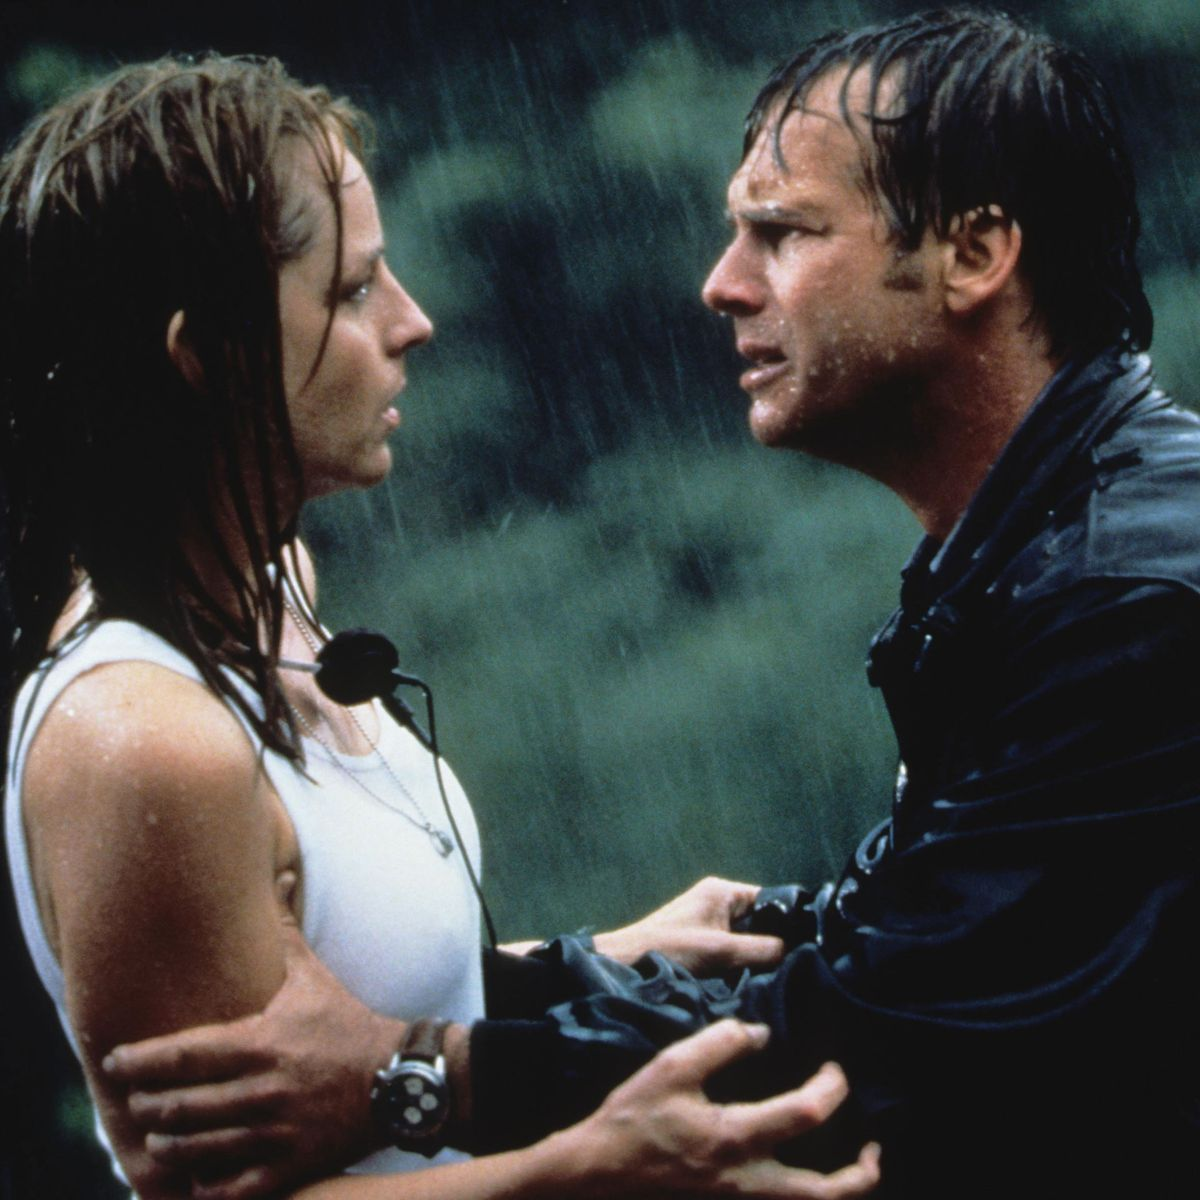 Twister Is The Perfect 90s Disaster Flick